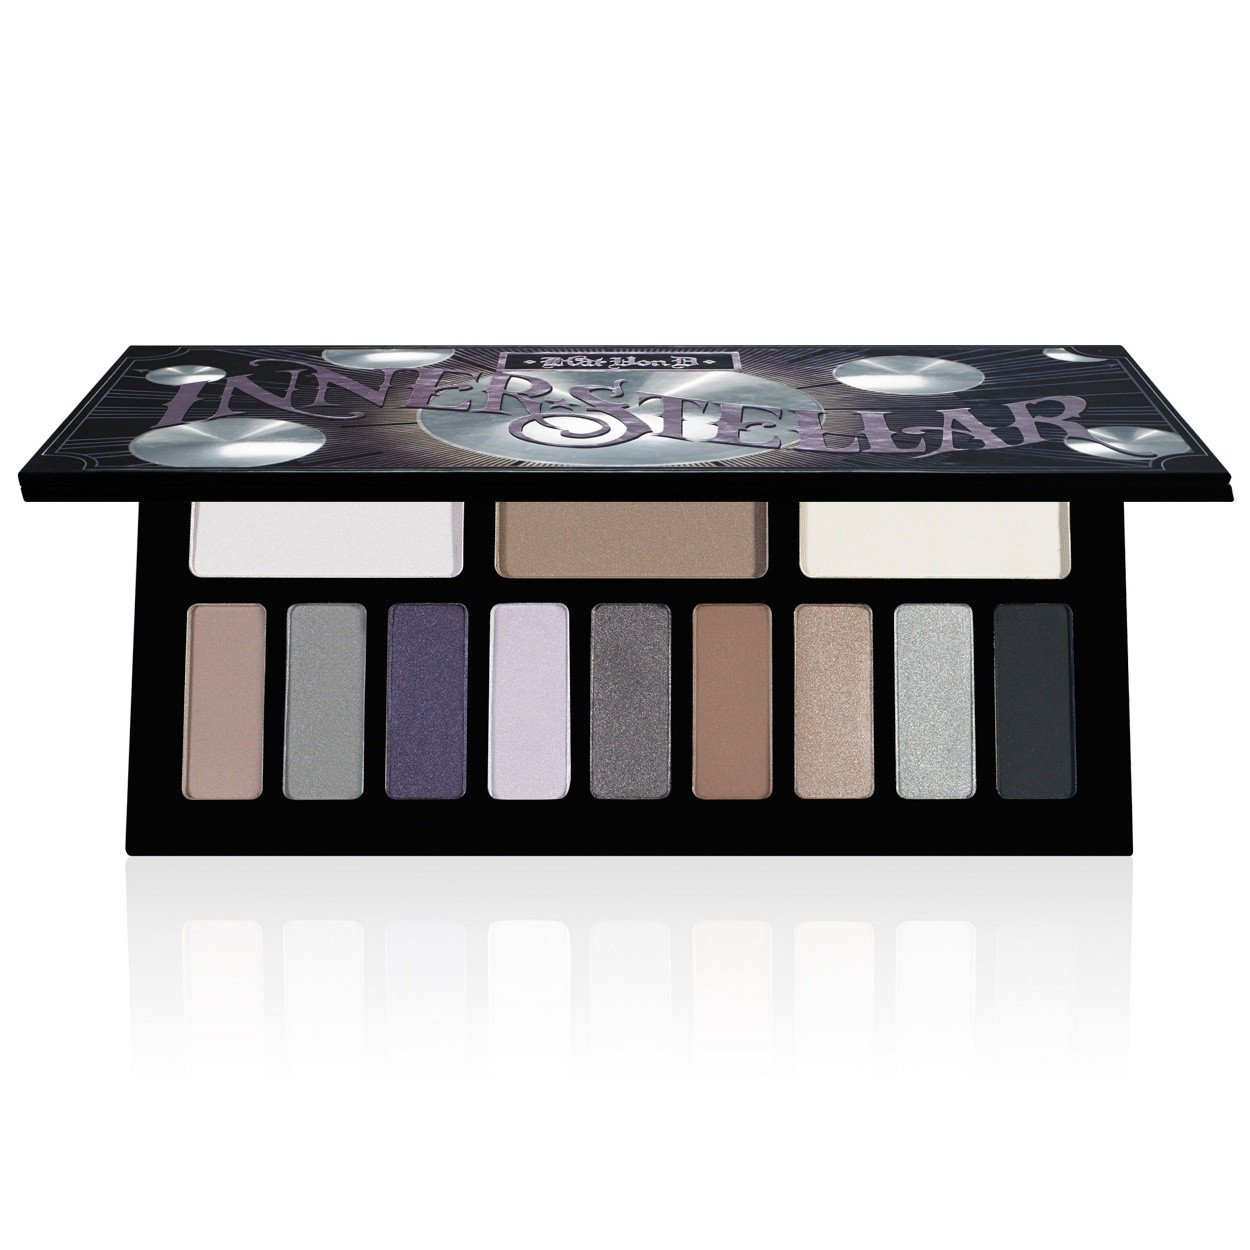 Kat Von D 'Innerstellar' Eye Shadow Palette